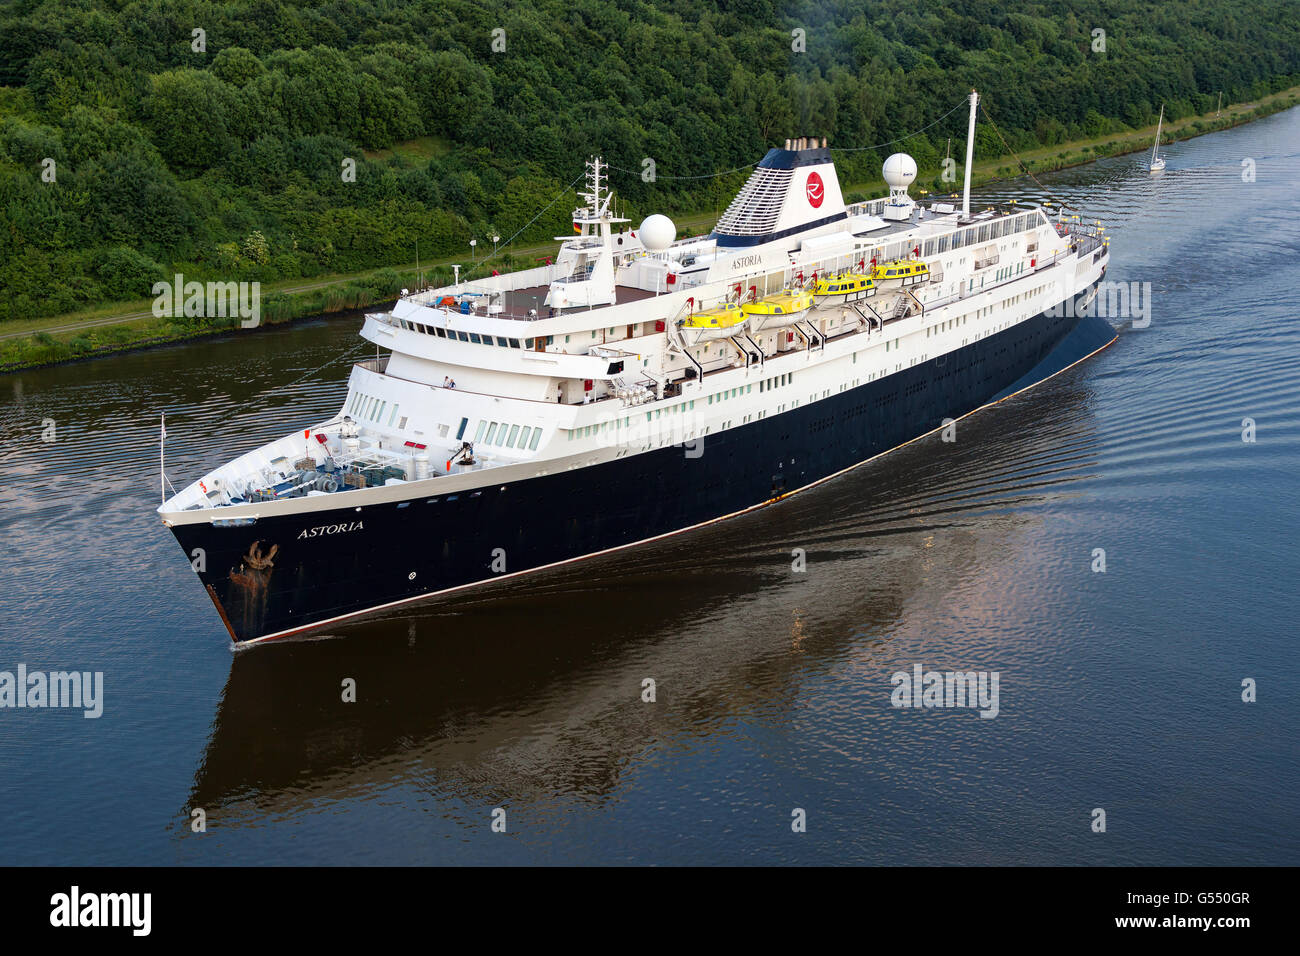 World's oldest active Ocean Liner Astoria (build in 1948) passing through the Kiel Canal on it's way from - Stock Image